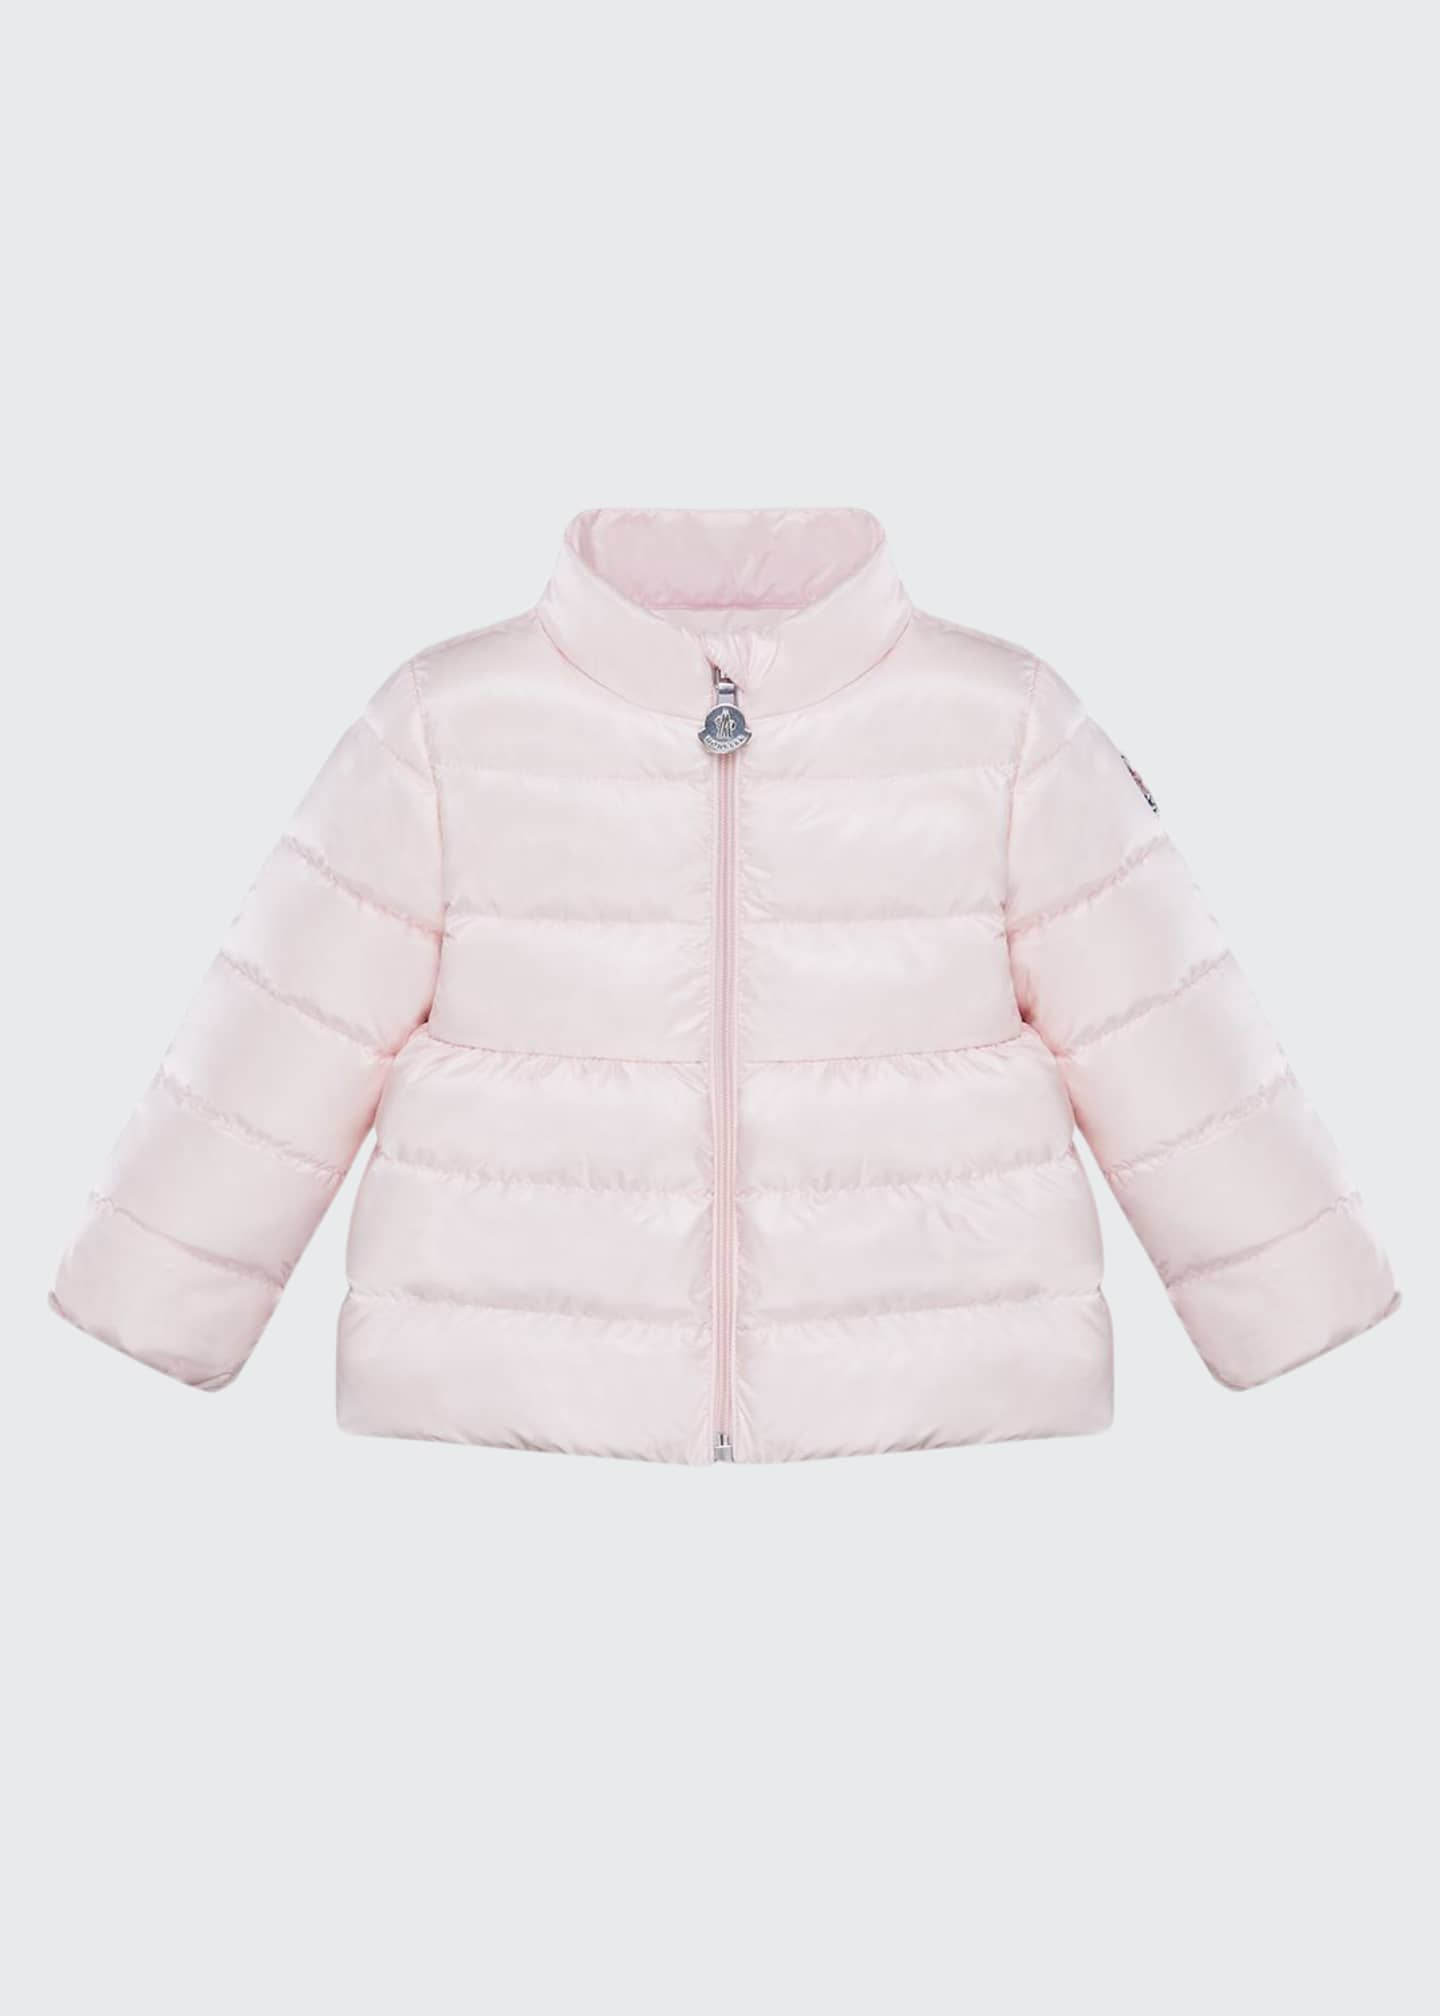 Image 1 of 2: Joelle Short Parka Jacket, Sizes 9 months-3